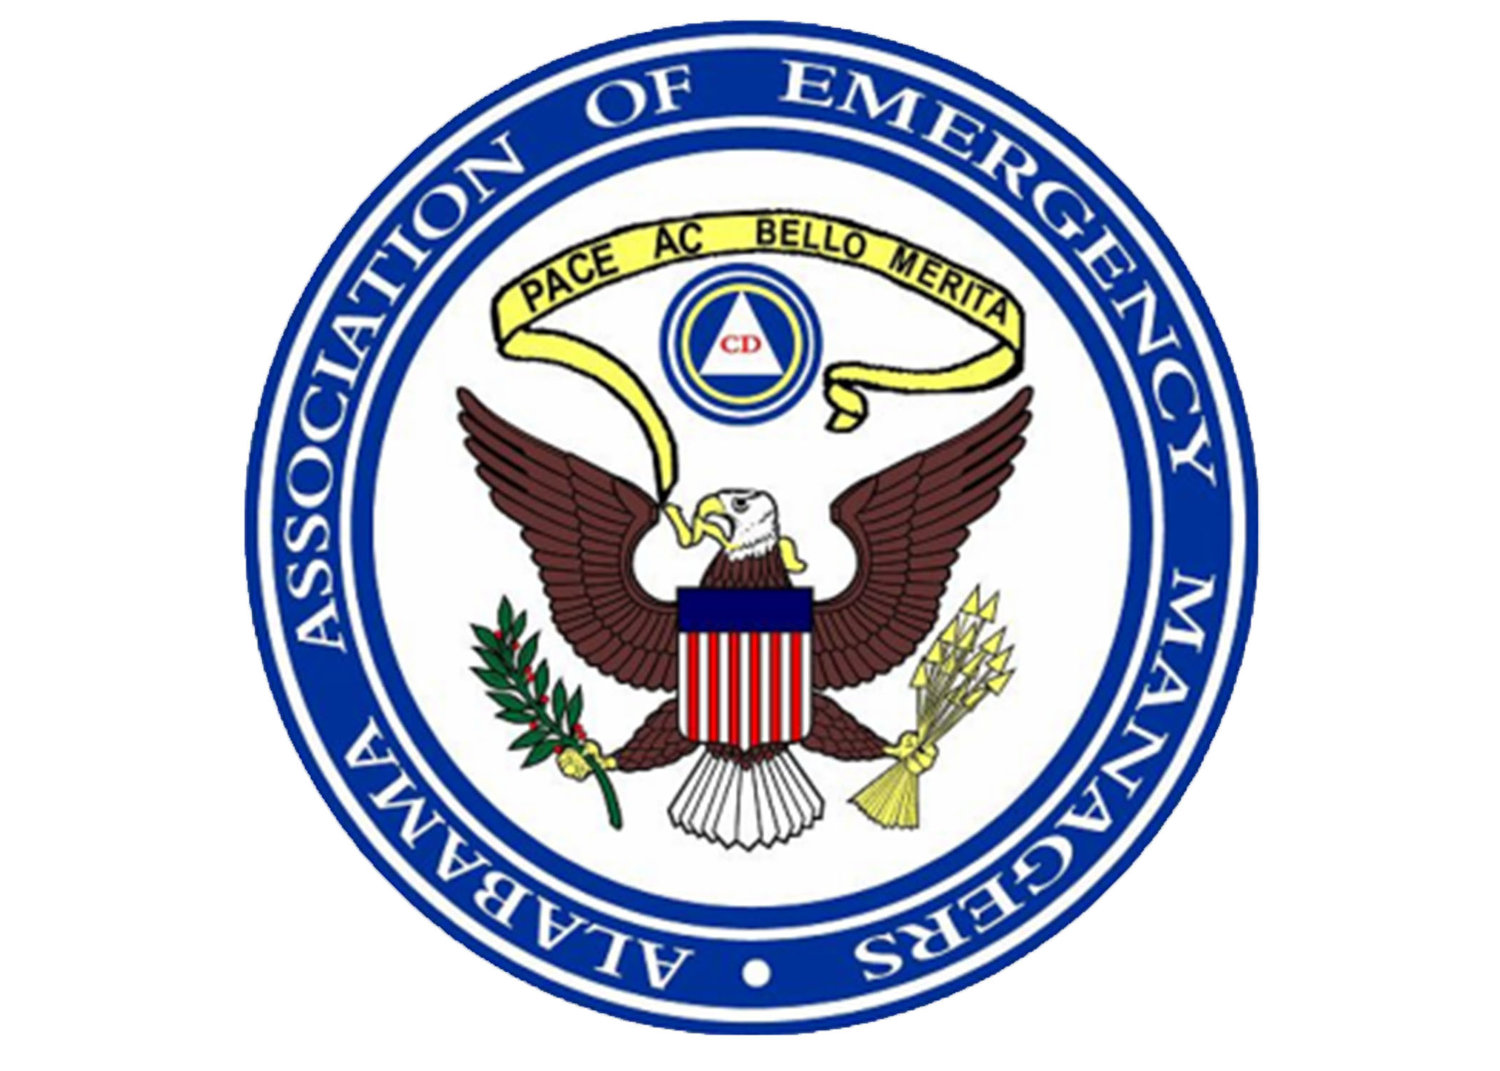 Alabama Association of Emergency Managers (AAEM)